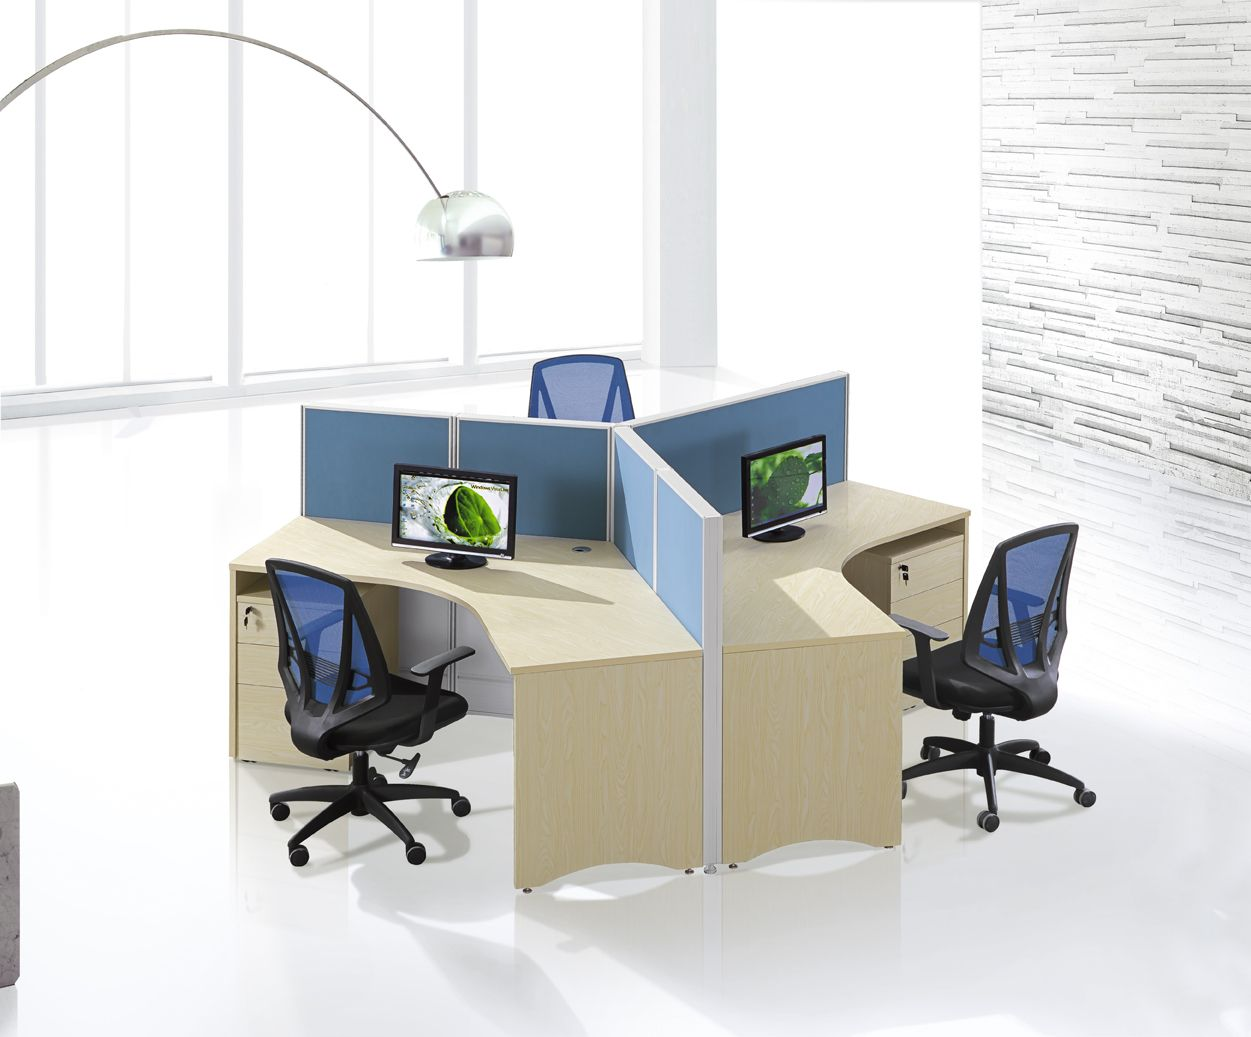 Large Office Cubicles For Sale Commercial Office Cubicles Office Furniture Shop Office Desk Designs Office Cubicle Office Workstations